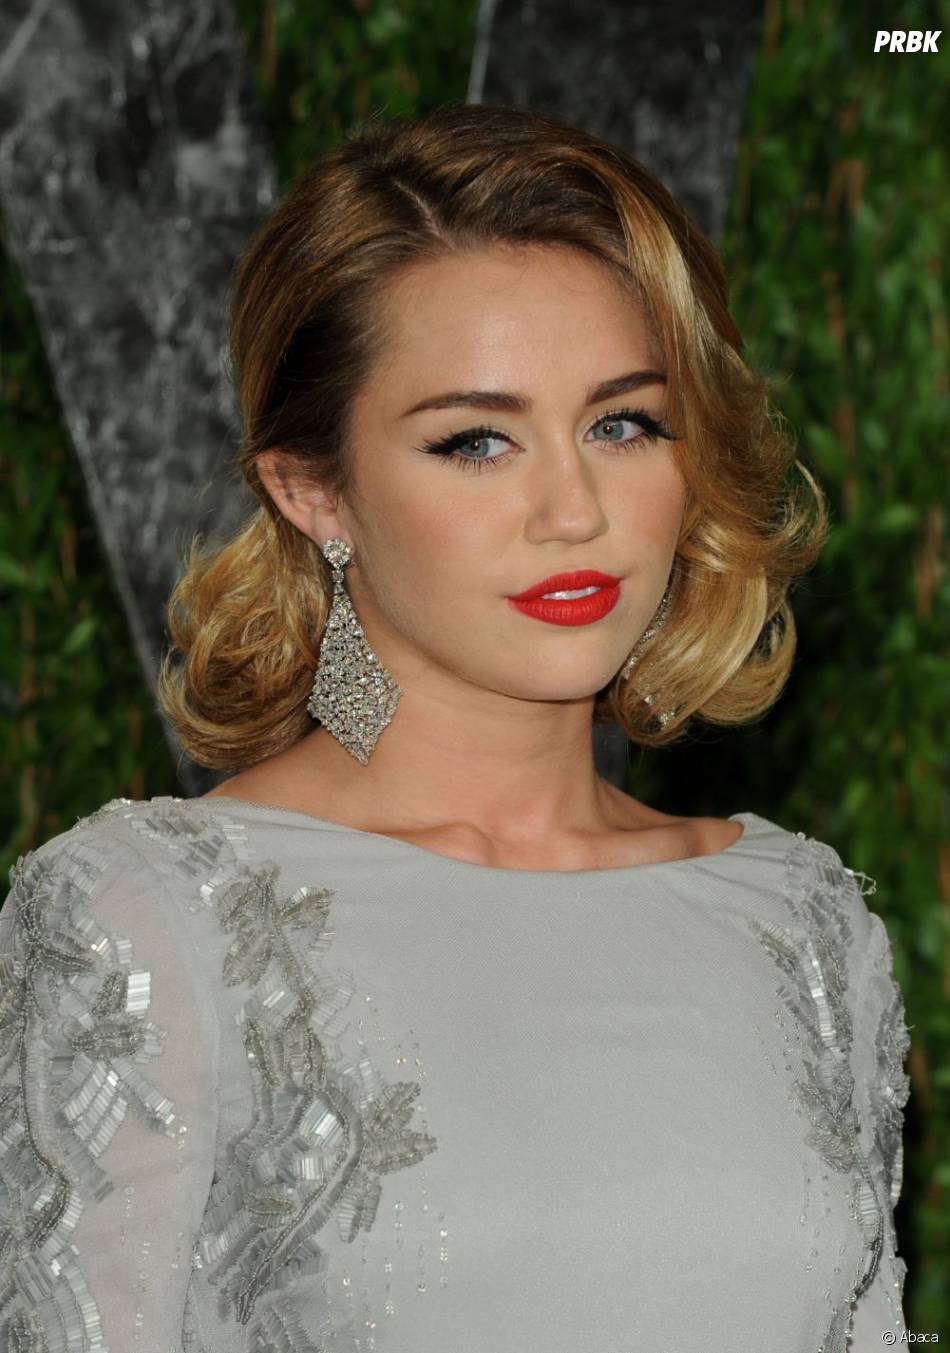 Miley Cyrus, on adore son maquillage